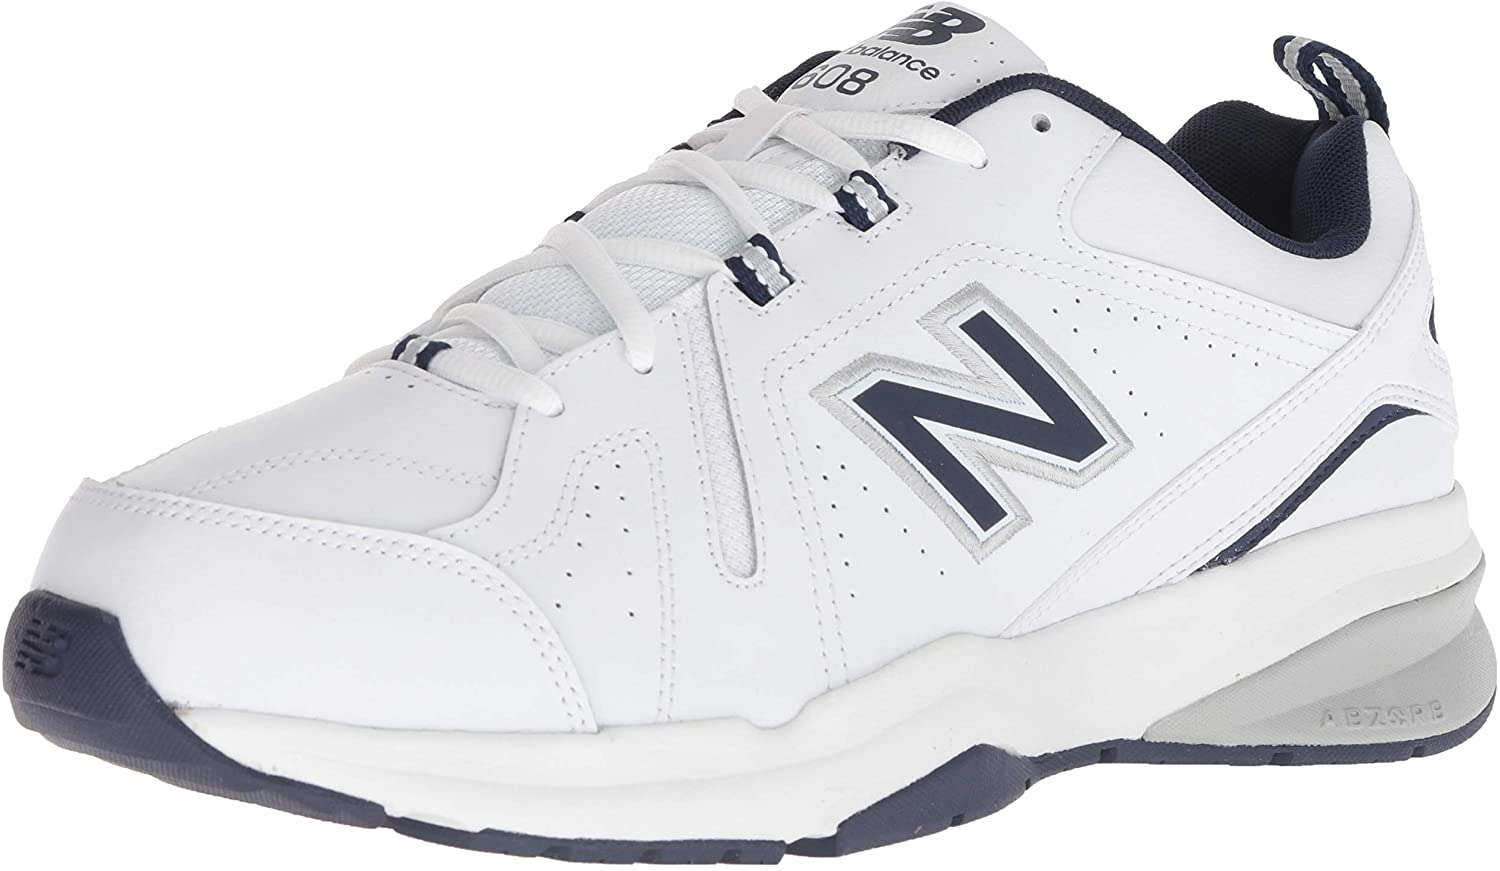 New Balance Men's 608 V5 Casual Comfort Cross Trainer sneaker; best shoes for wide feet